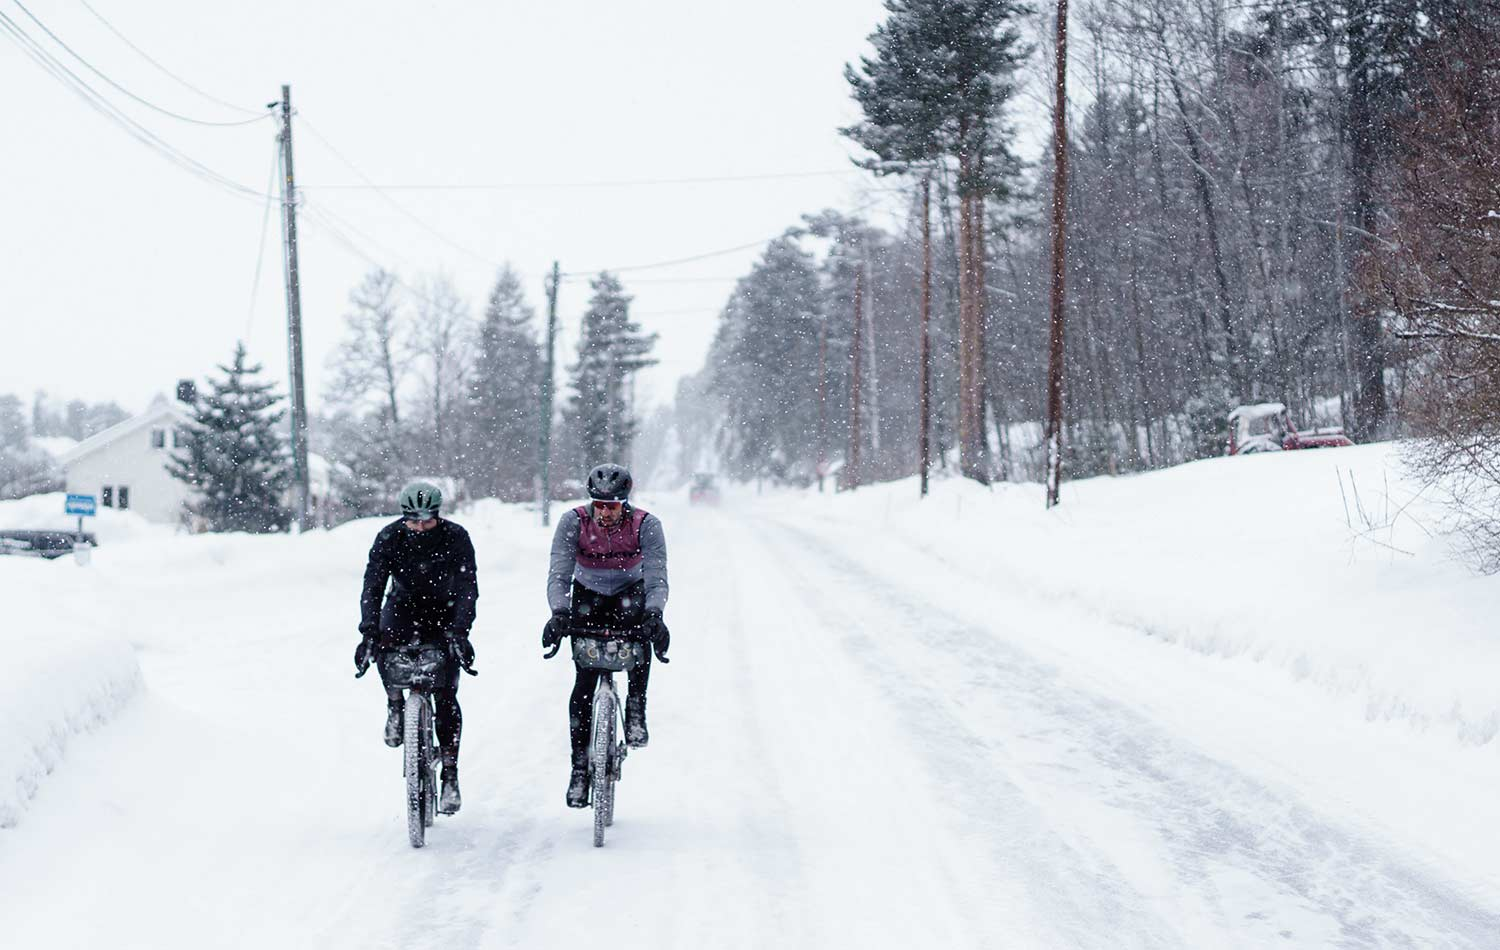 cycling advice for winter winter bike trip